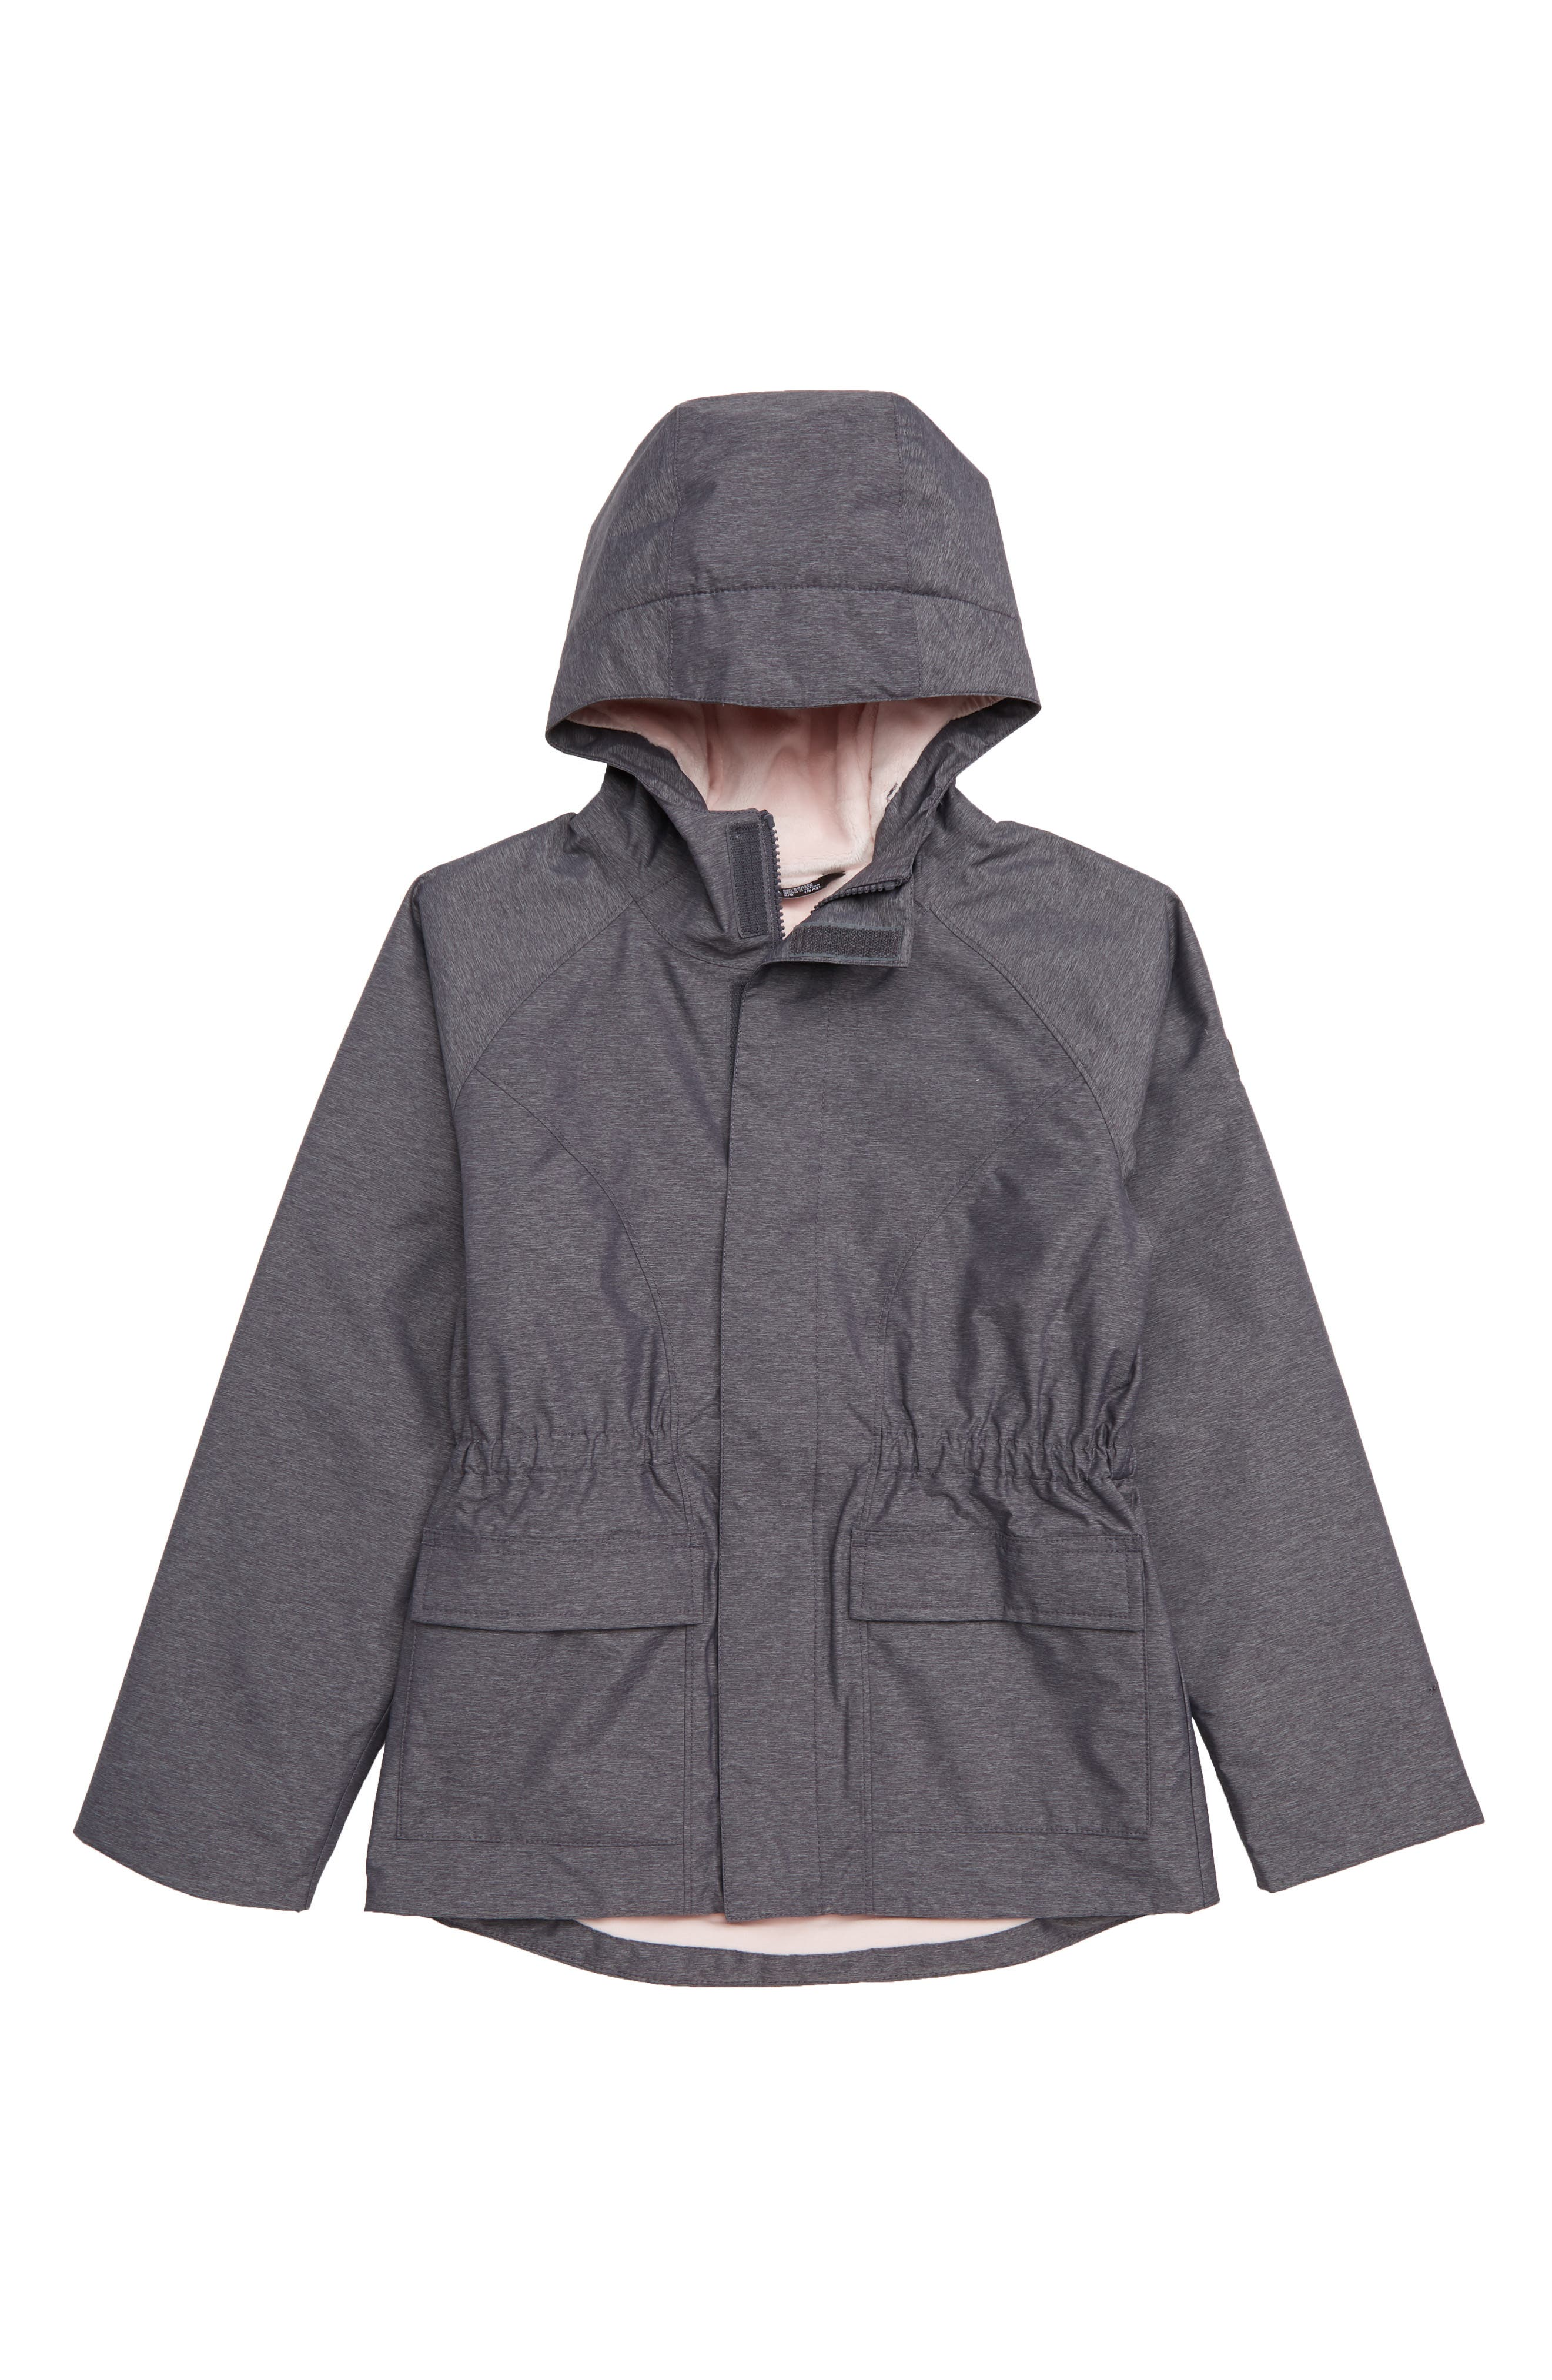 THE NORTH FACE Warm Sophie Hooded Rain Parka, Main, color, PERISCOPE GREY HEATHER